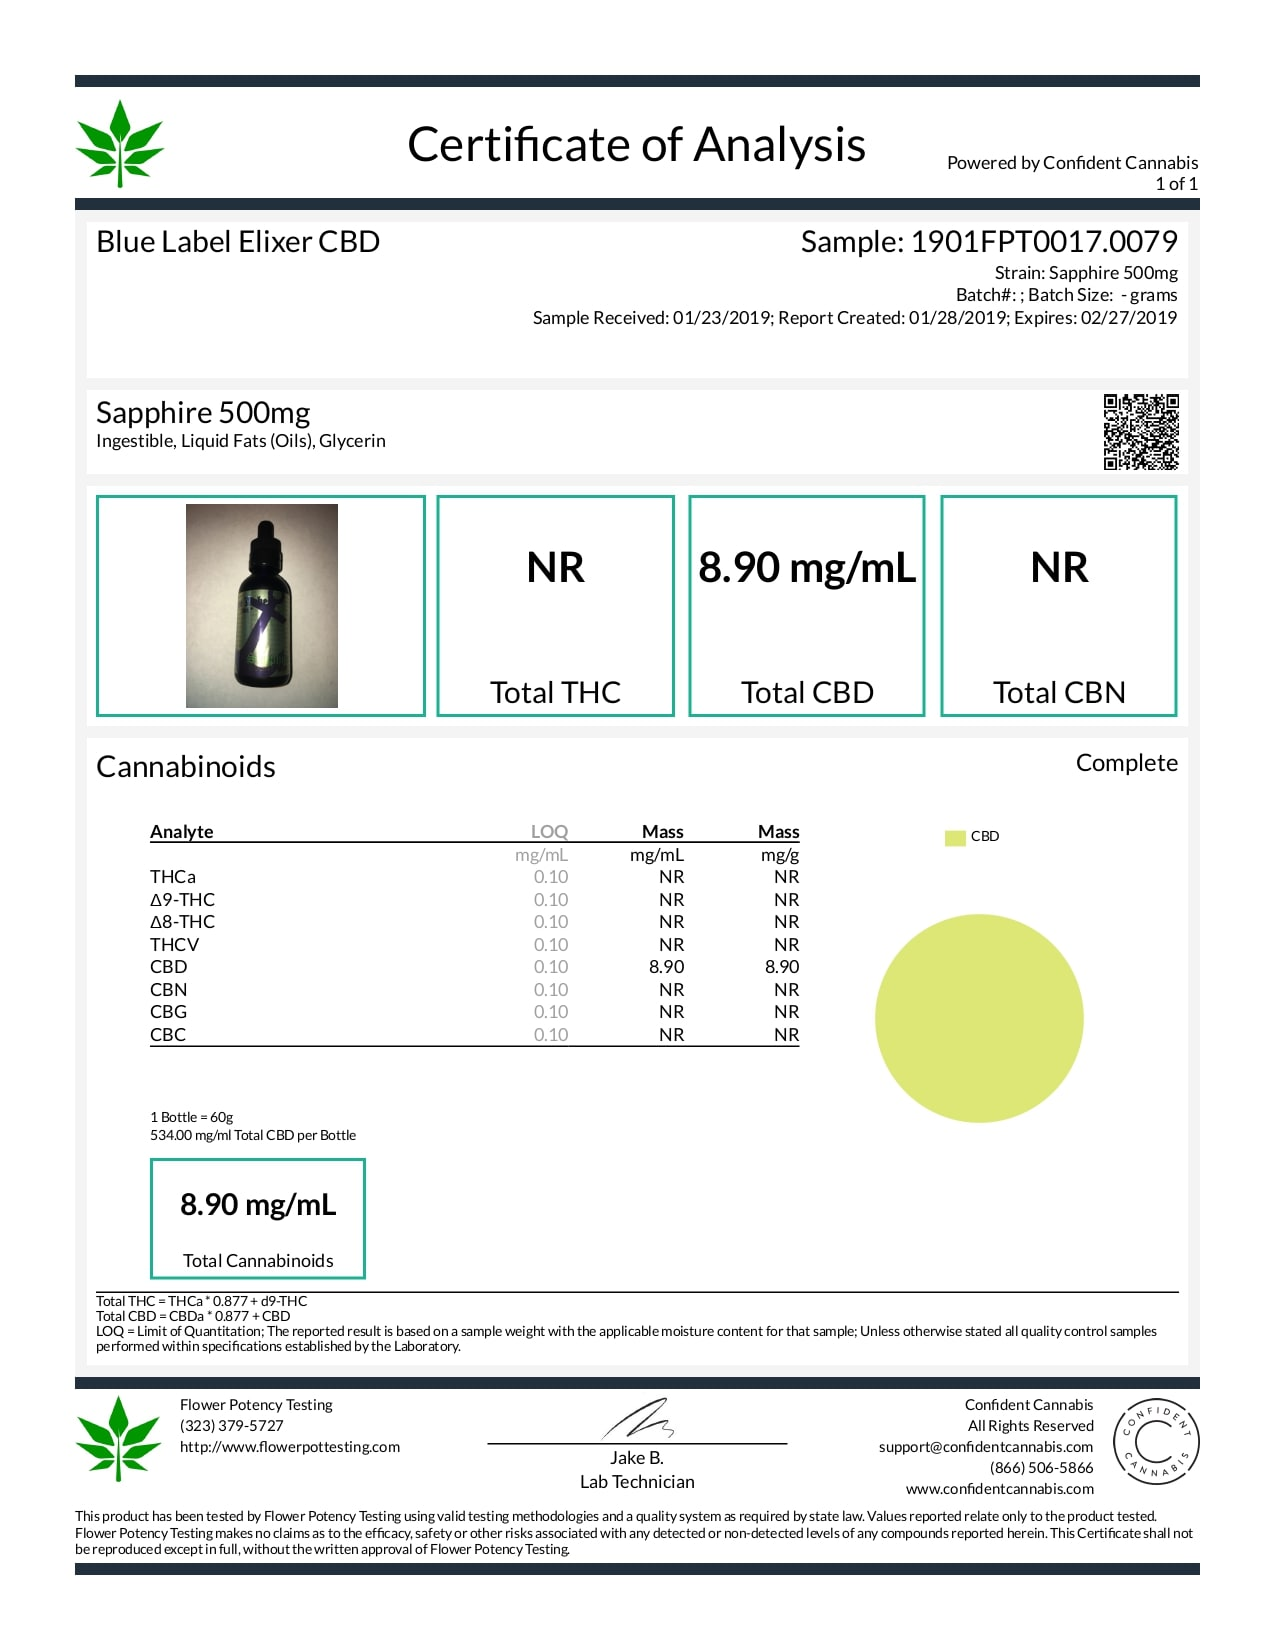 Blue Label CBD Vape Juice Sapphire 500mg Lab Report